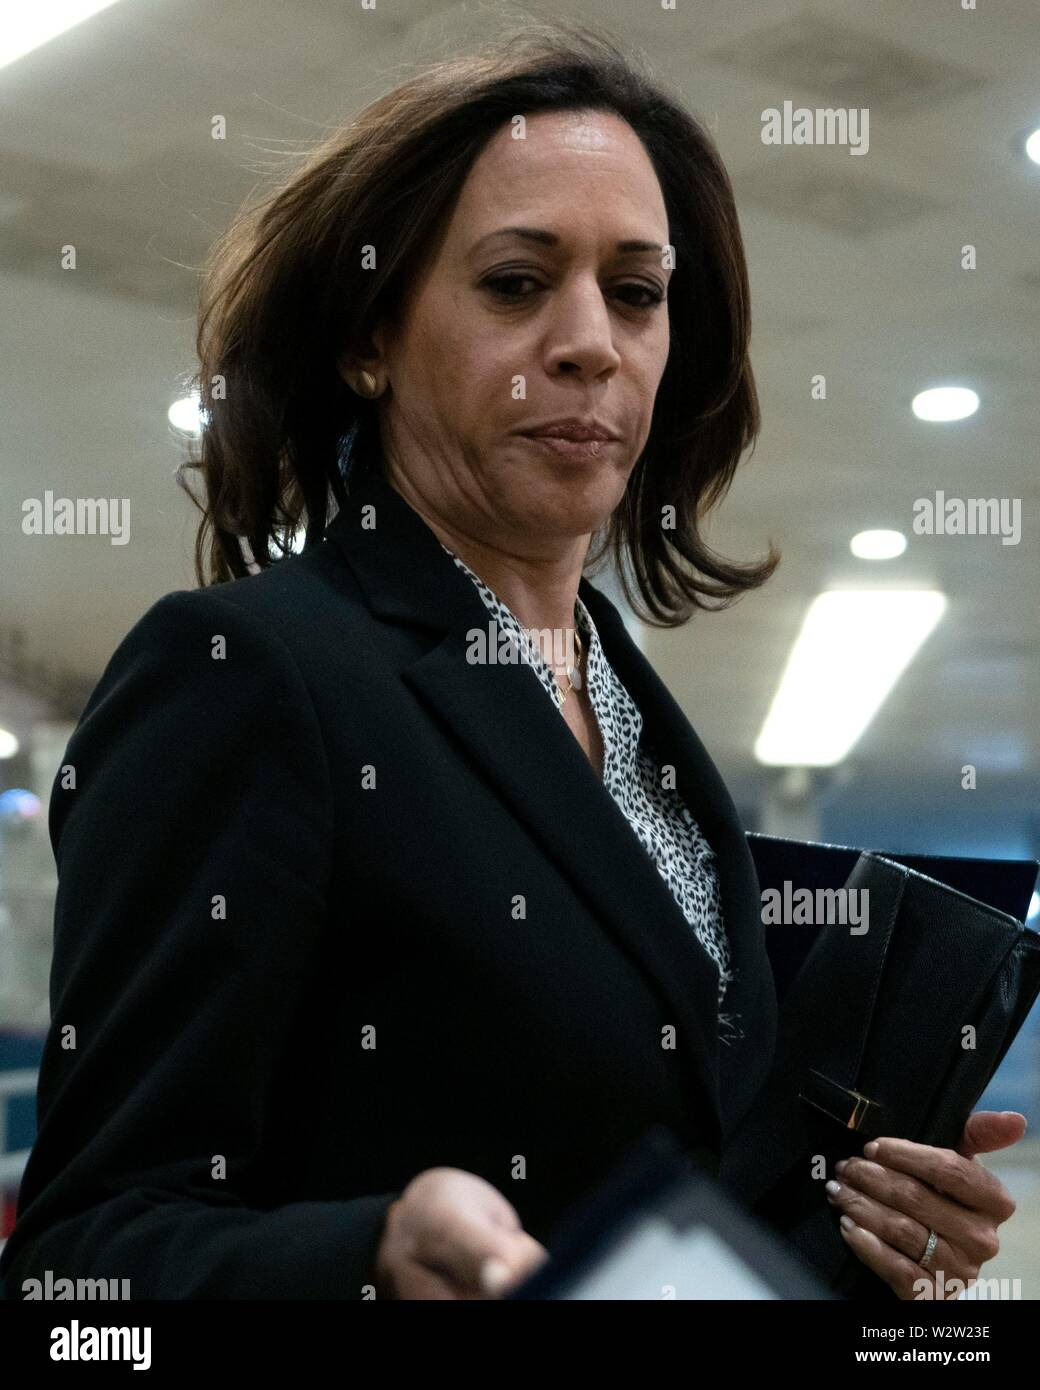 Washington, United States Of America. 10th July, 2019. United States Senator Kamala Harris (Democrat of California) arrives to a closed door briefing on American election security on Capitol Hill in Washington, DC, U.S. on July 10, 2019. Credit: Stefani Reynolds/CNP | usage worldwide Credit: dpa/Alamy Live News Stock Photo